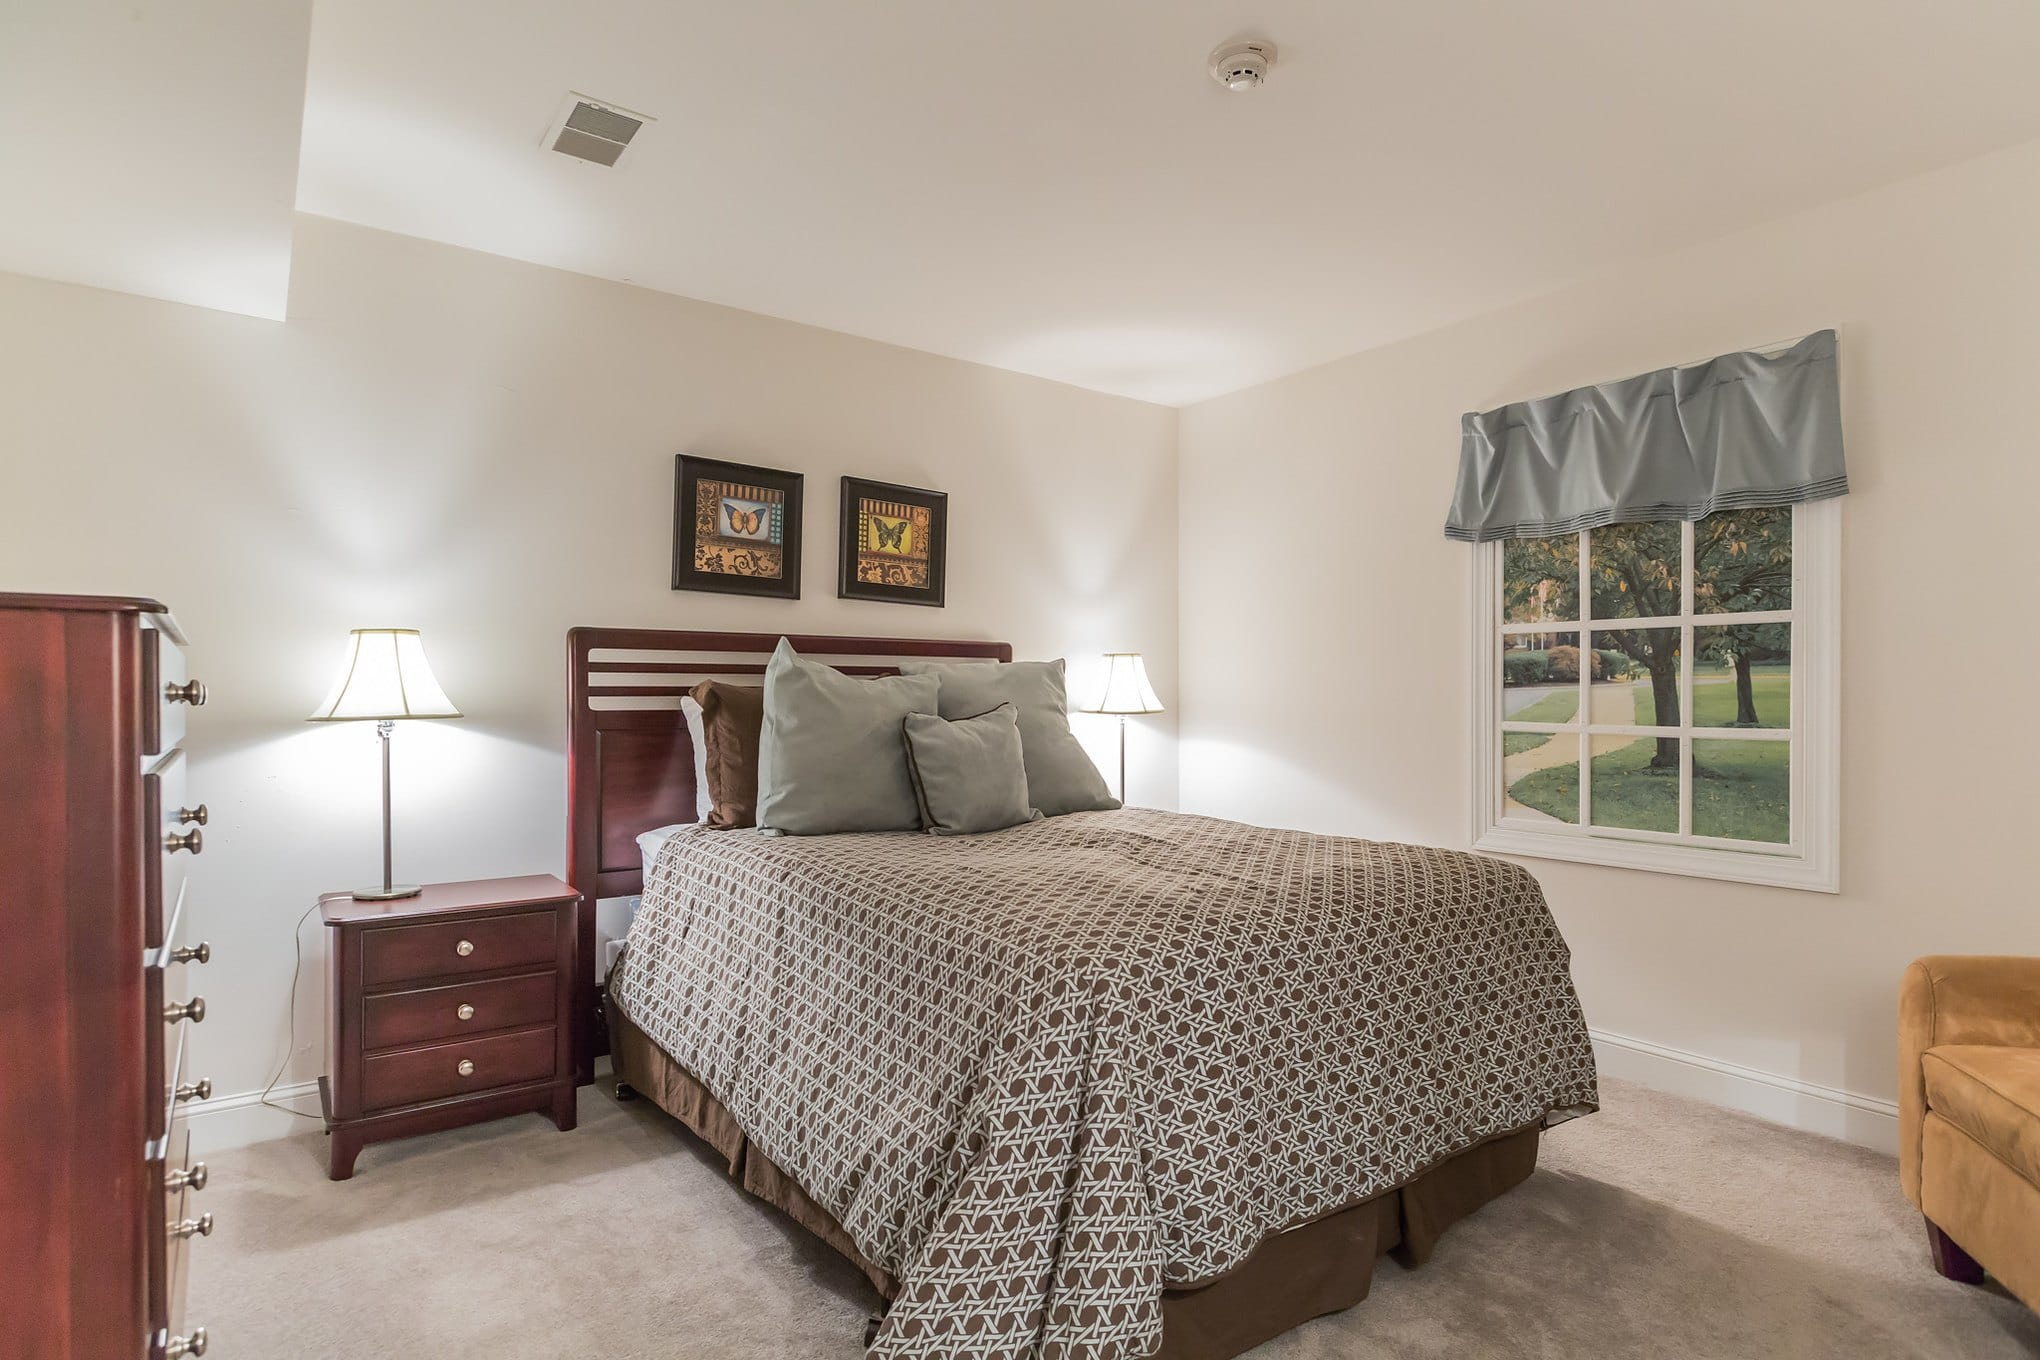 Bedroom at Village Square Apartments in Mount Holly, NJ